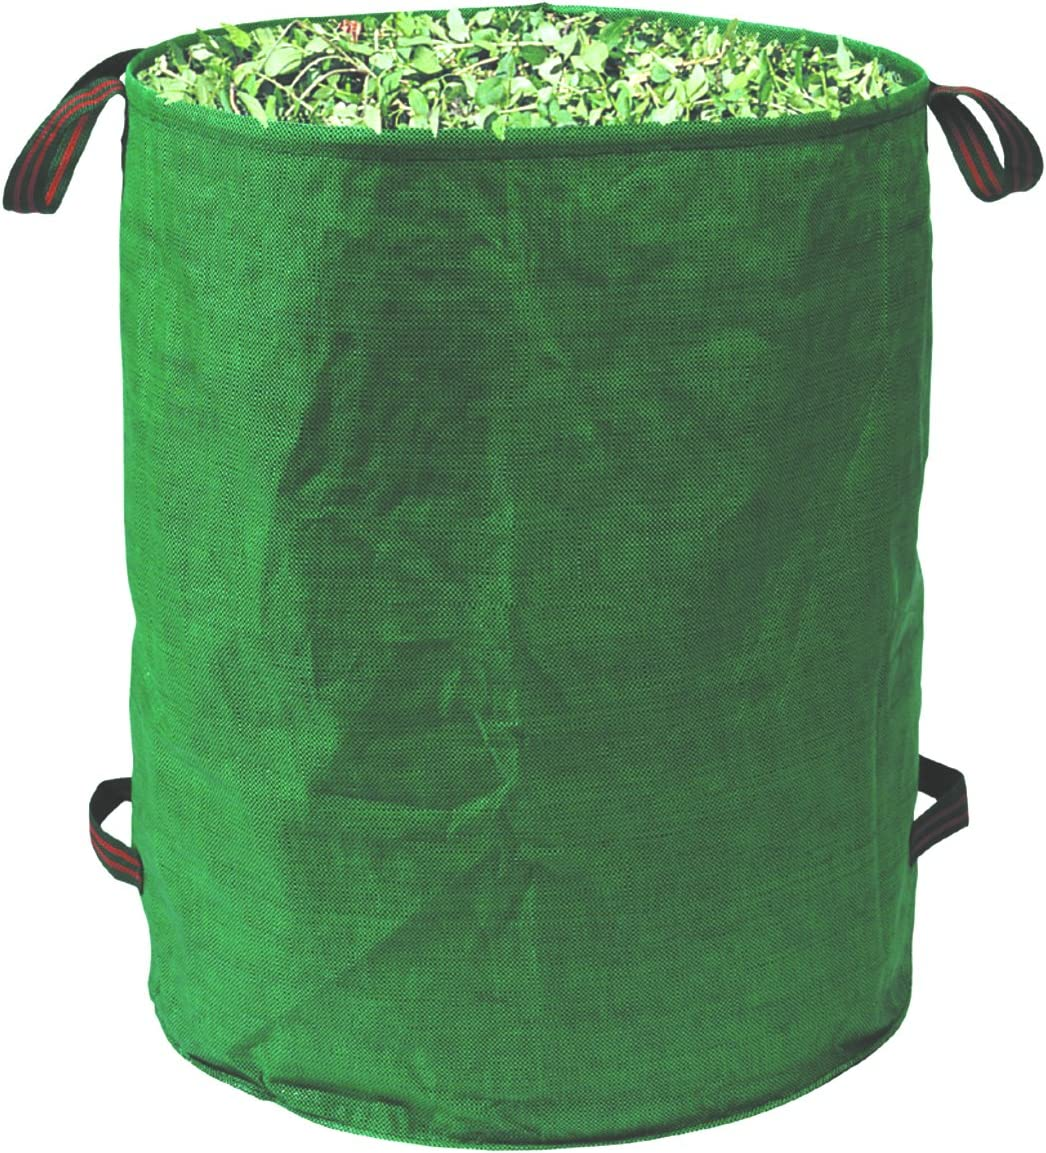 Bosmere Products Ltd G535 Tip Bag Sale Max 49% OFF SALE% OFF Mammoth